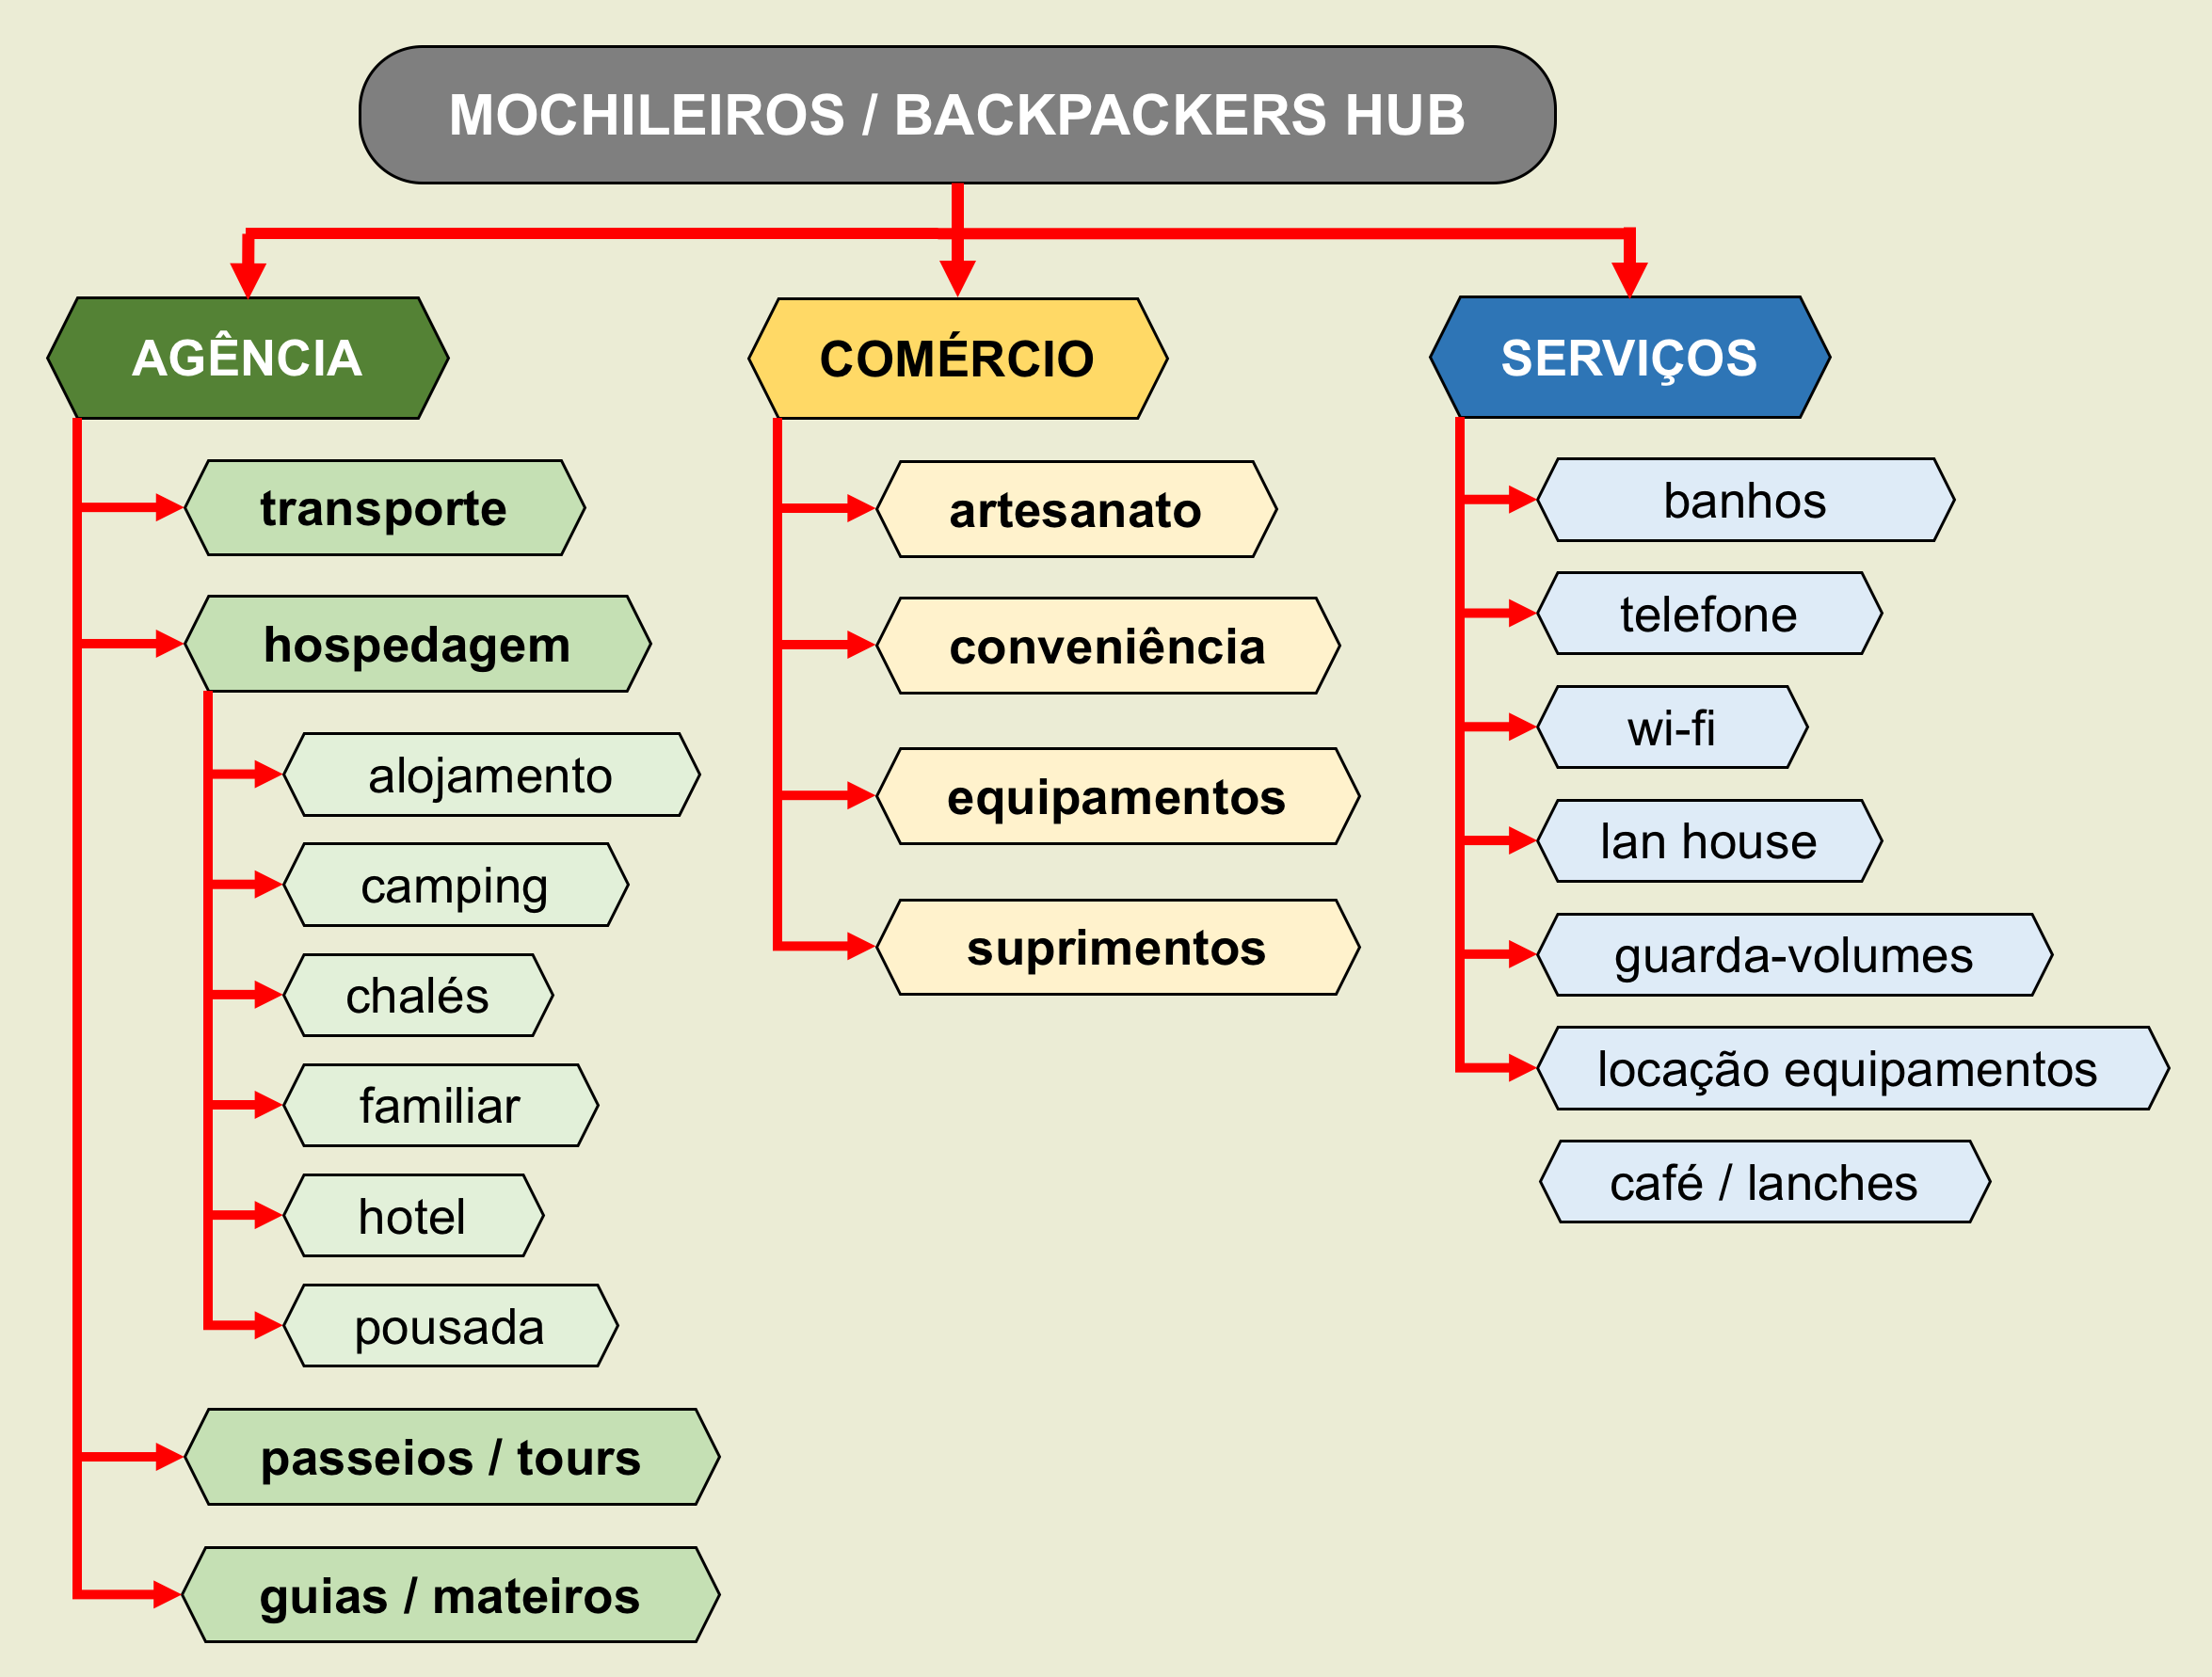 HUB mochileiro backpacker